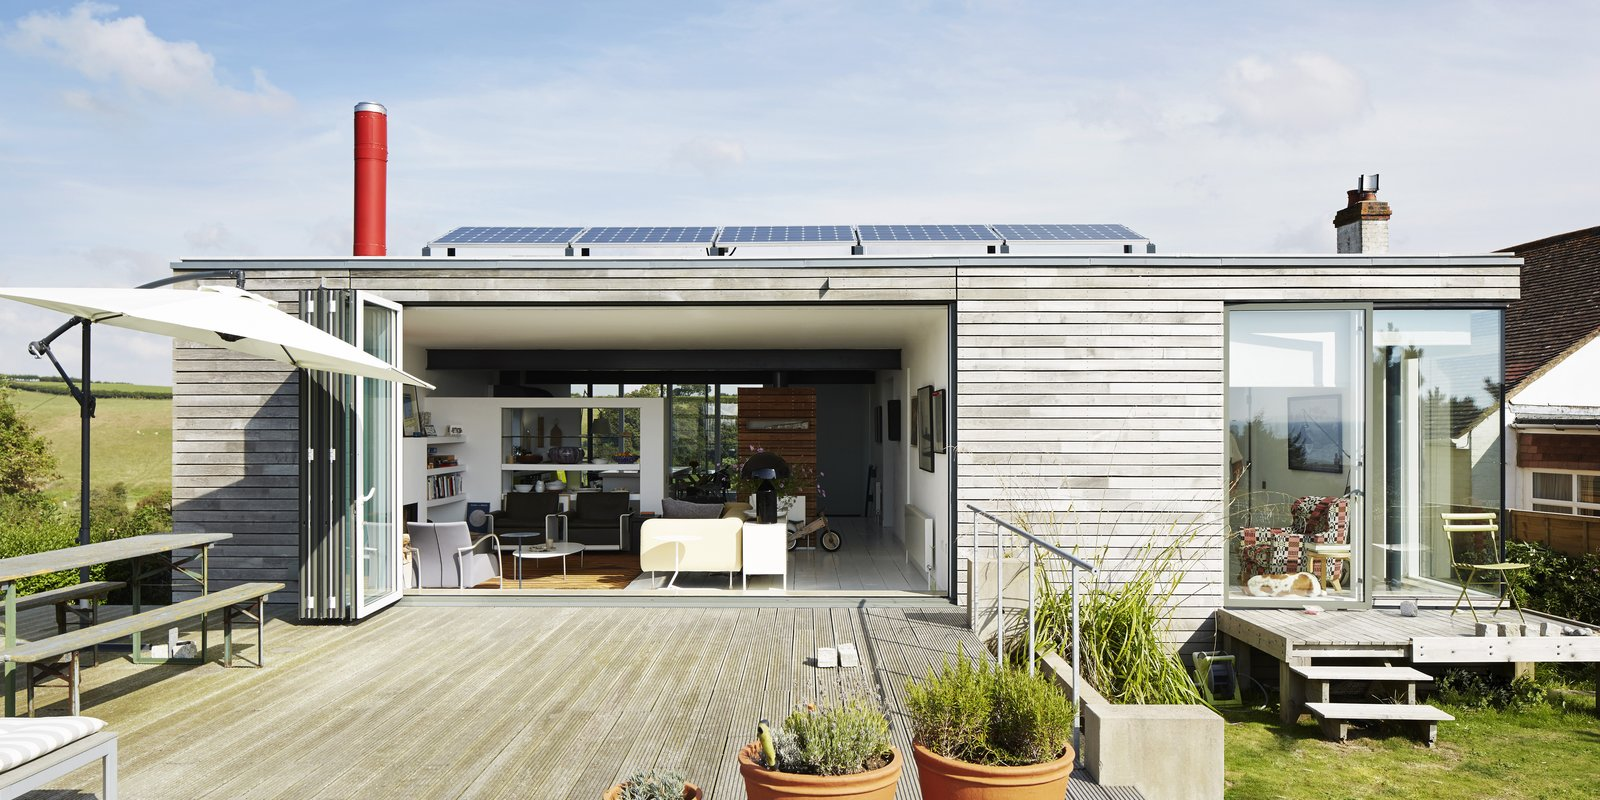 Outdoor, Wood Patio, Porch, Deck, Raised Planters, and Grass Pett Level, England Dwell Magazine : November / December 2017  Photo 1 of 14 in Fall in Love With This British Architect's Colorful Weekend Retreat